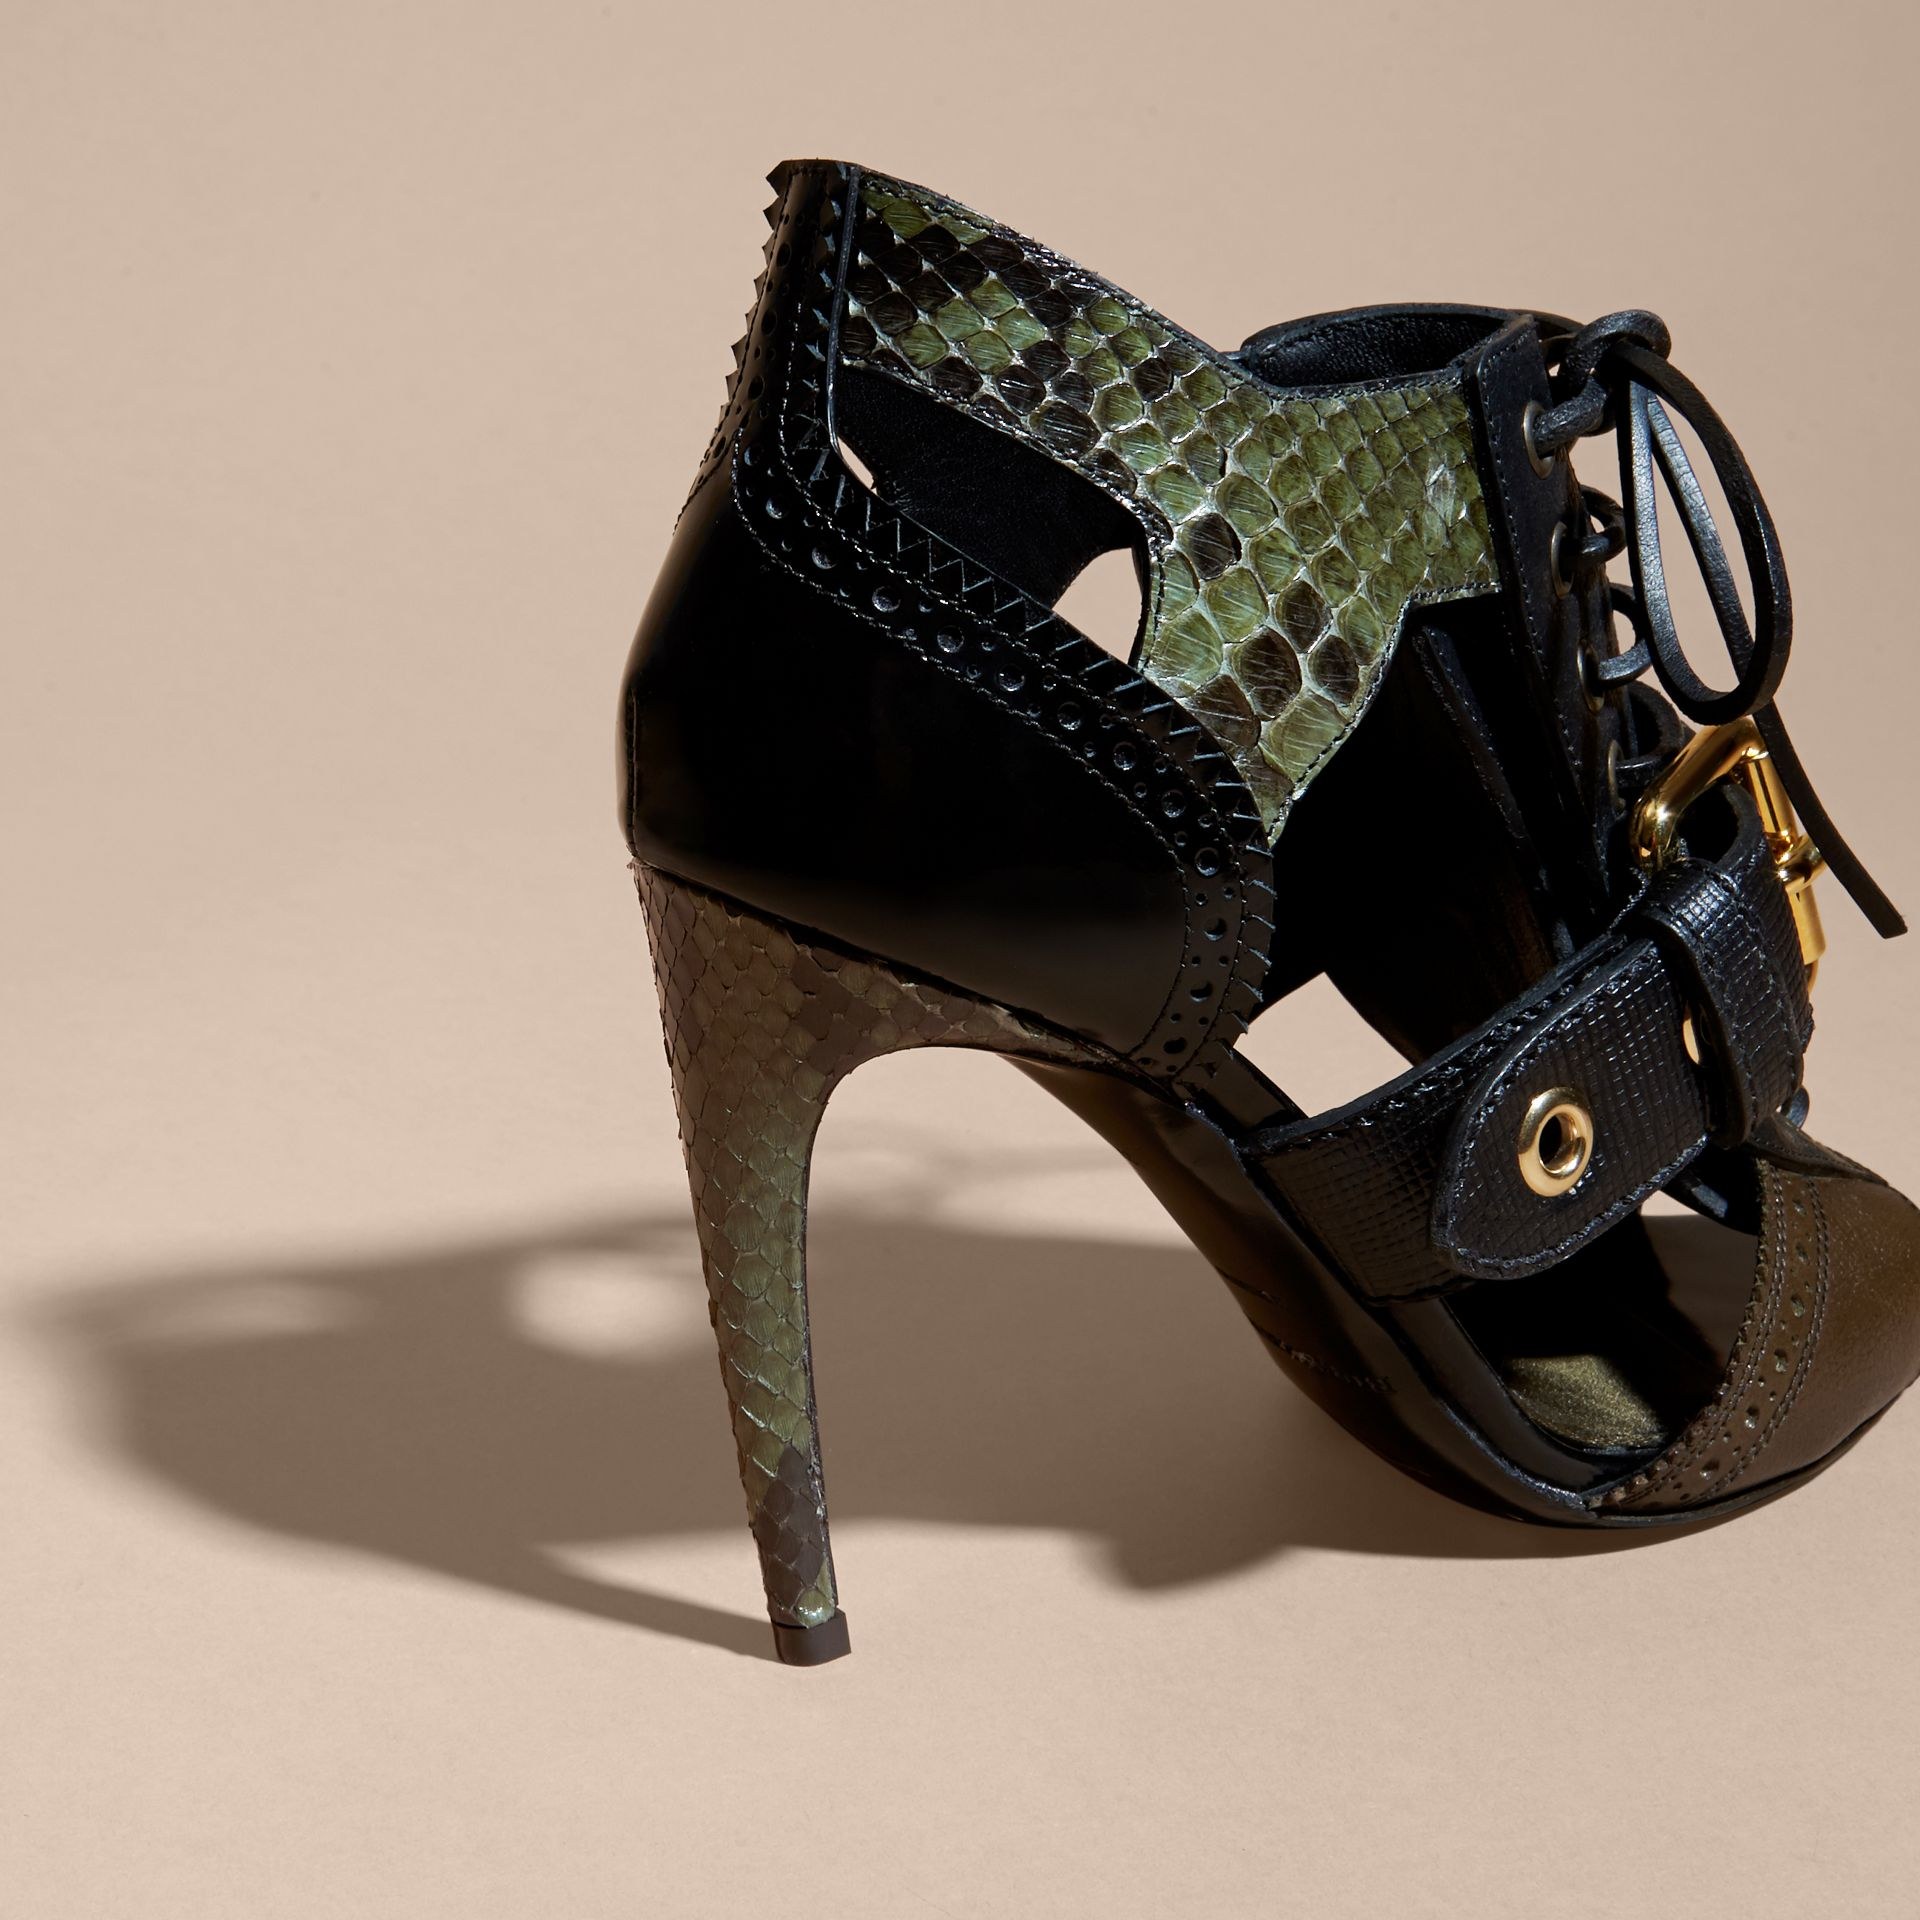 Buckle Detail Leather and Snakeskin Cut-out Ankle Boots in Military Olive - gallery image 4